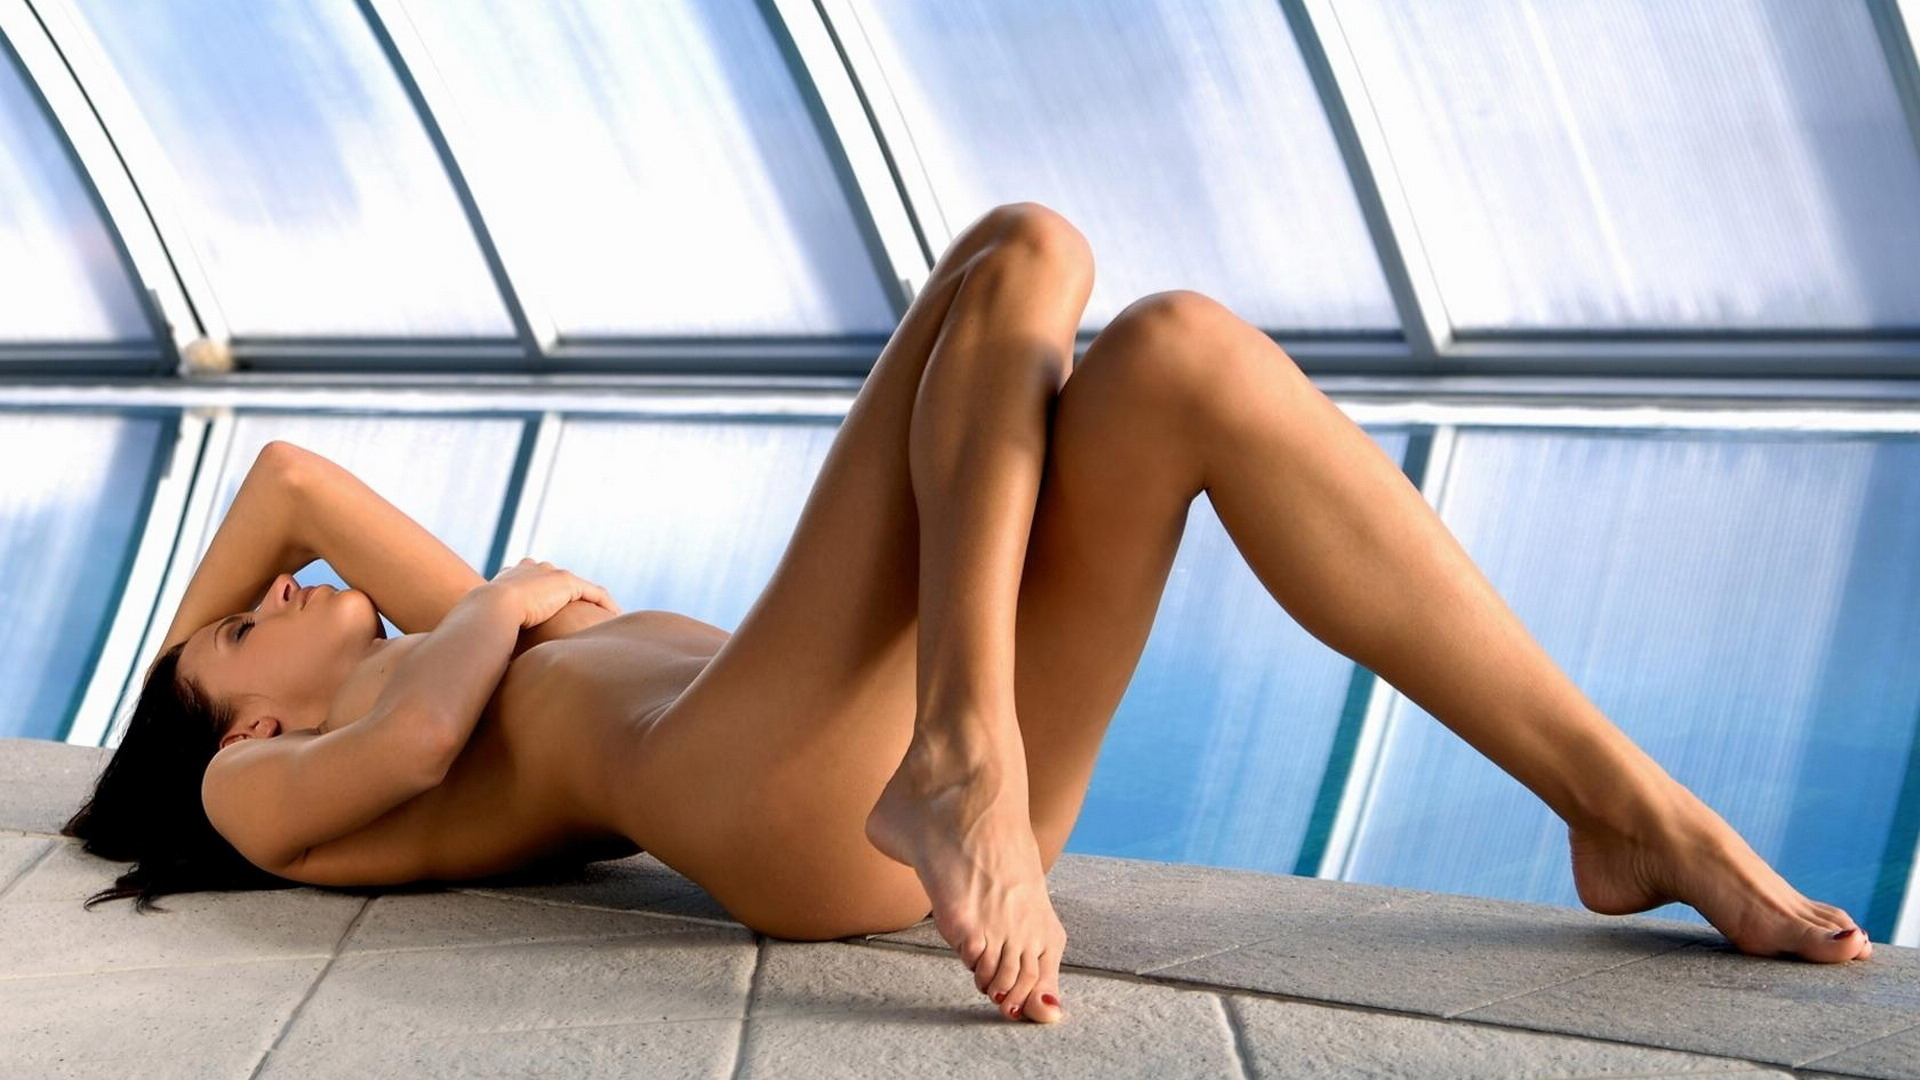 sexy-naked-girls-legs-in-the-air-erotic-flagellation-videos